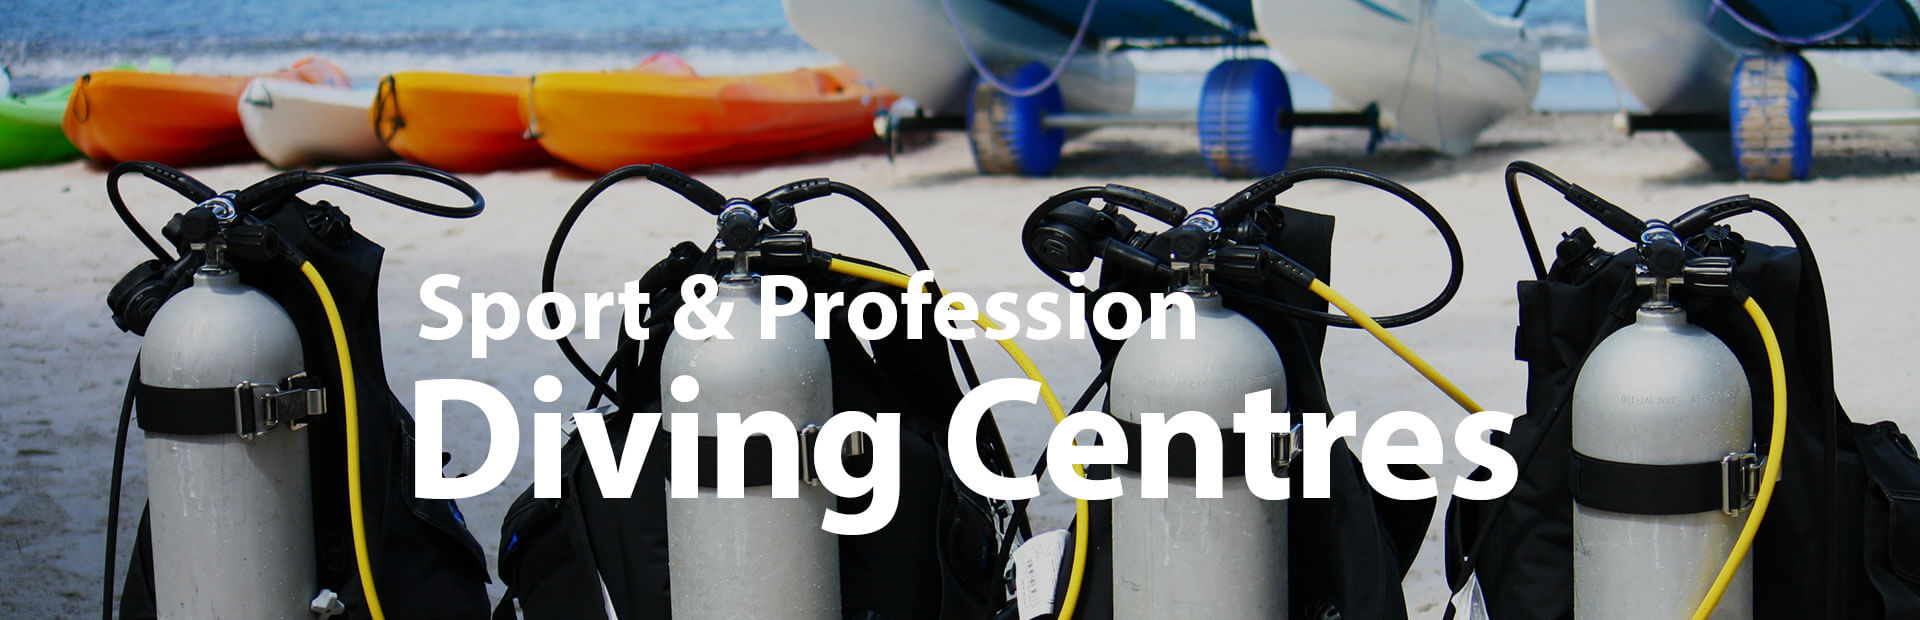 Oxygen production for recreational and professional divers